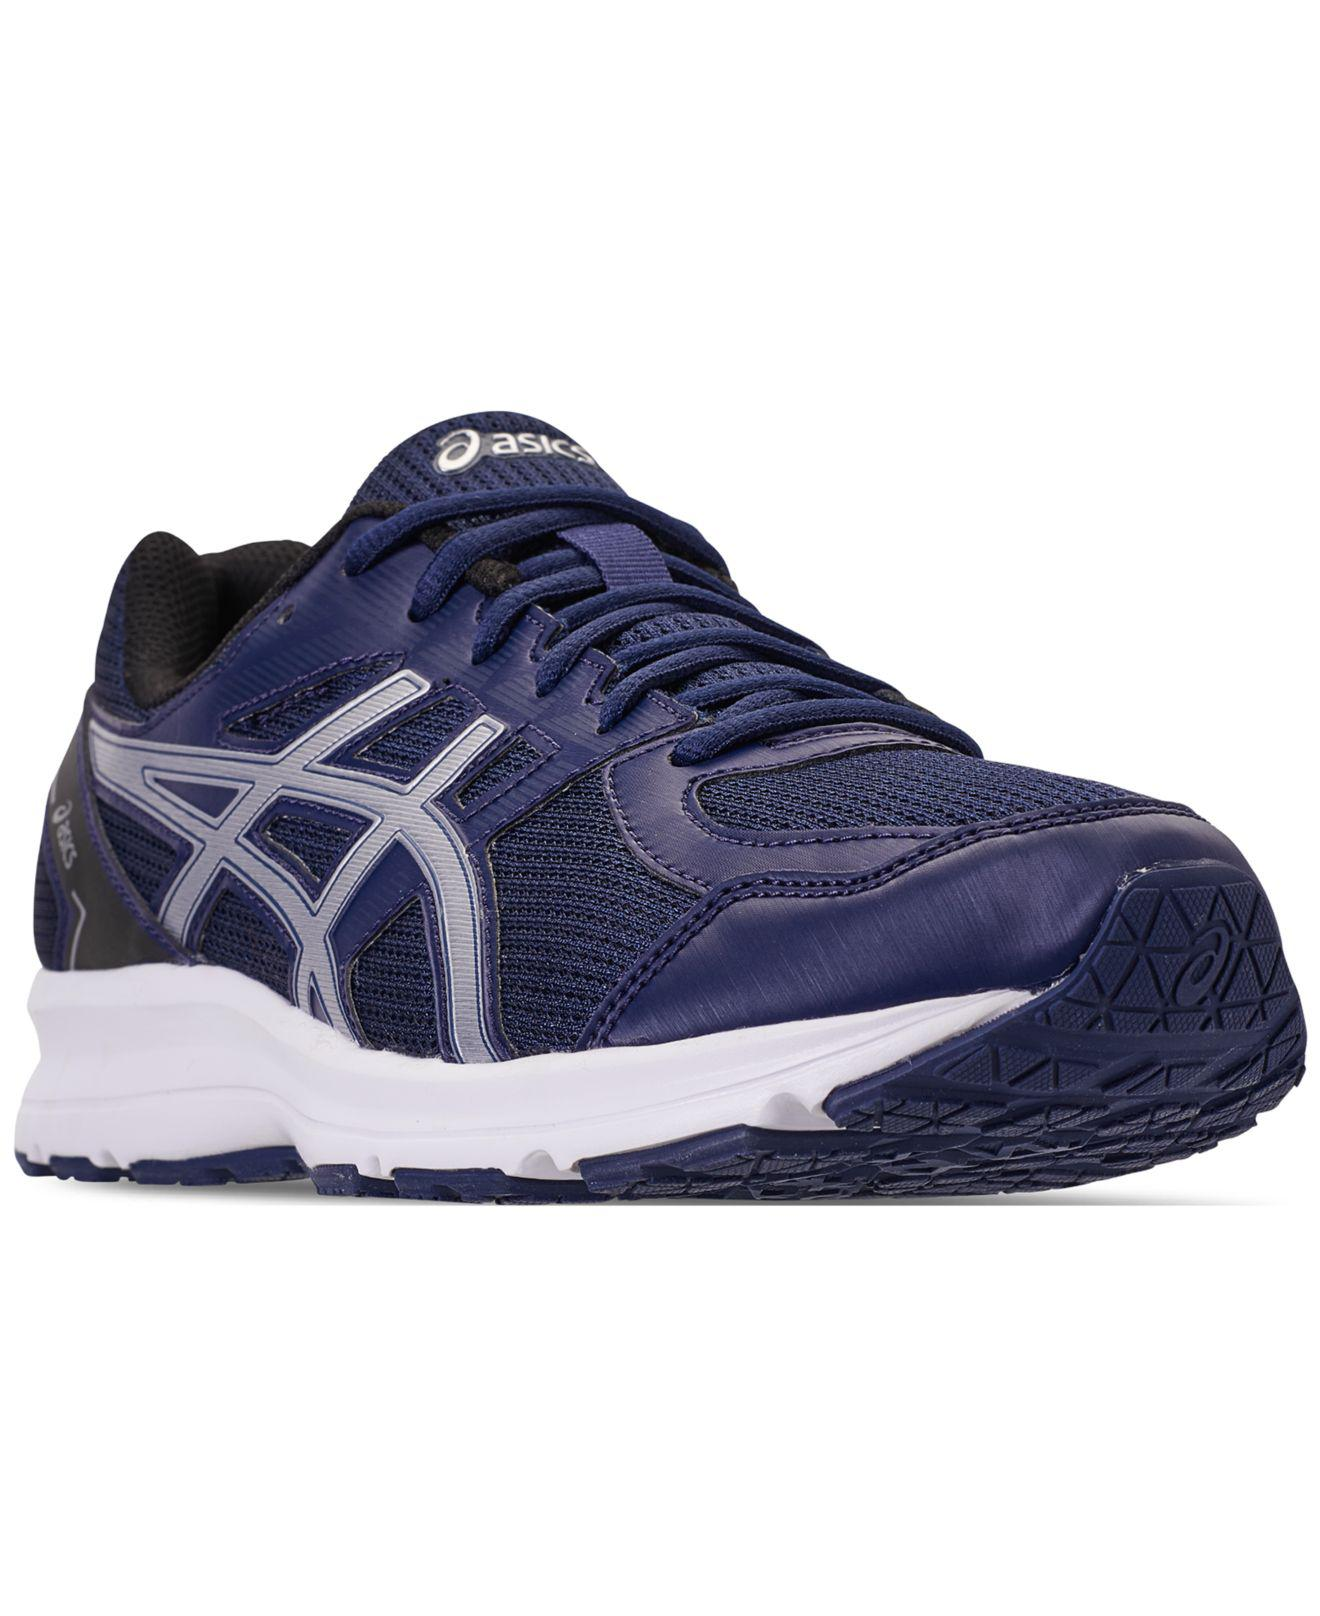 ac7d30ebdc3e Lyst - Asics Jolt Wide Width Running Sneakers From Finish Line in ...